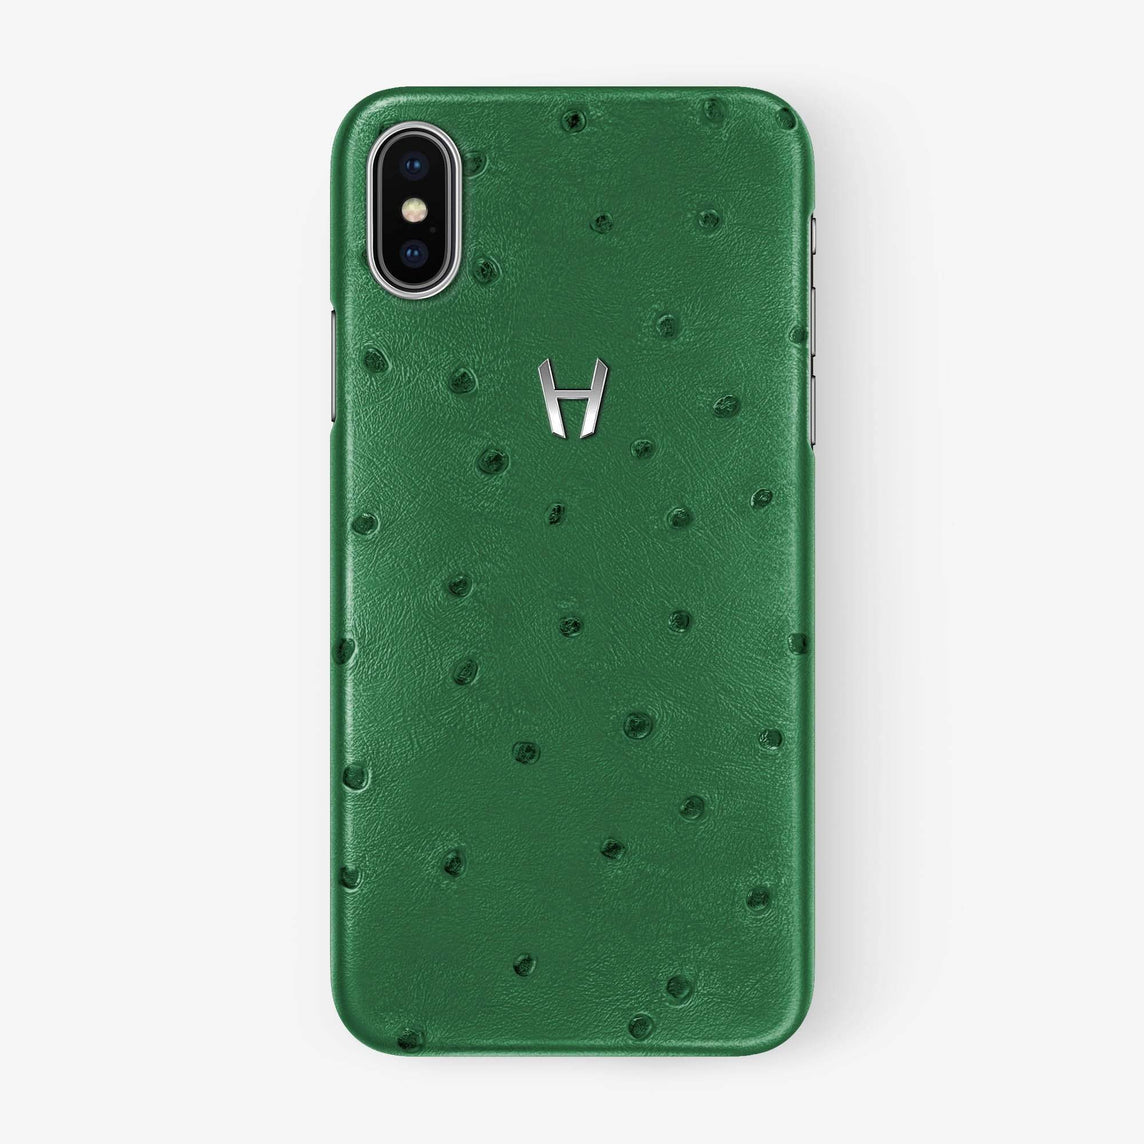 Ostrich Case iPhone Xs Max | Green - Stainless Steel withouth-personalization